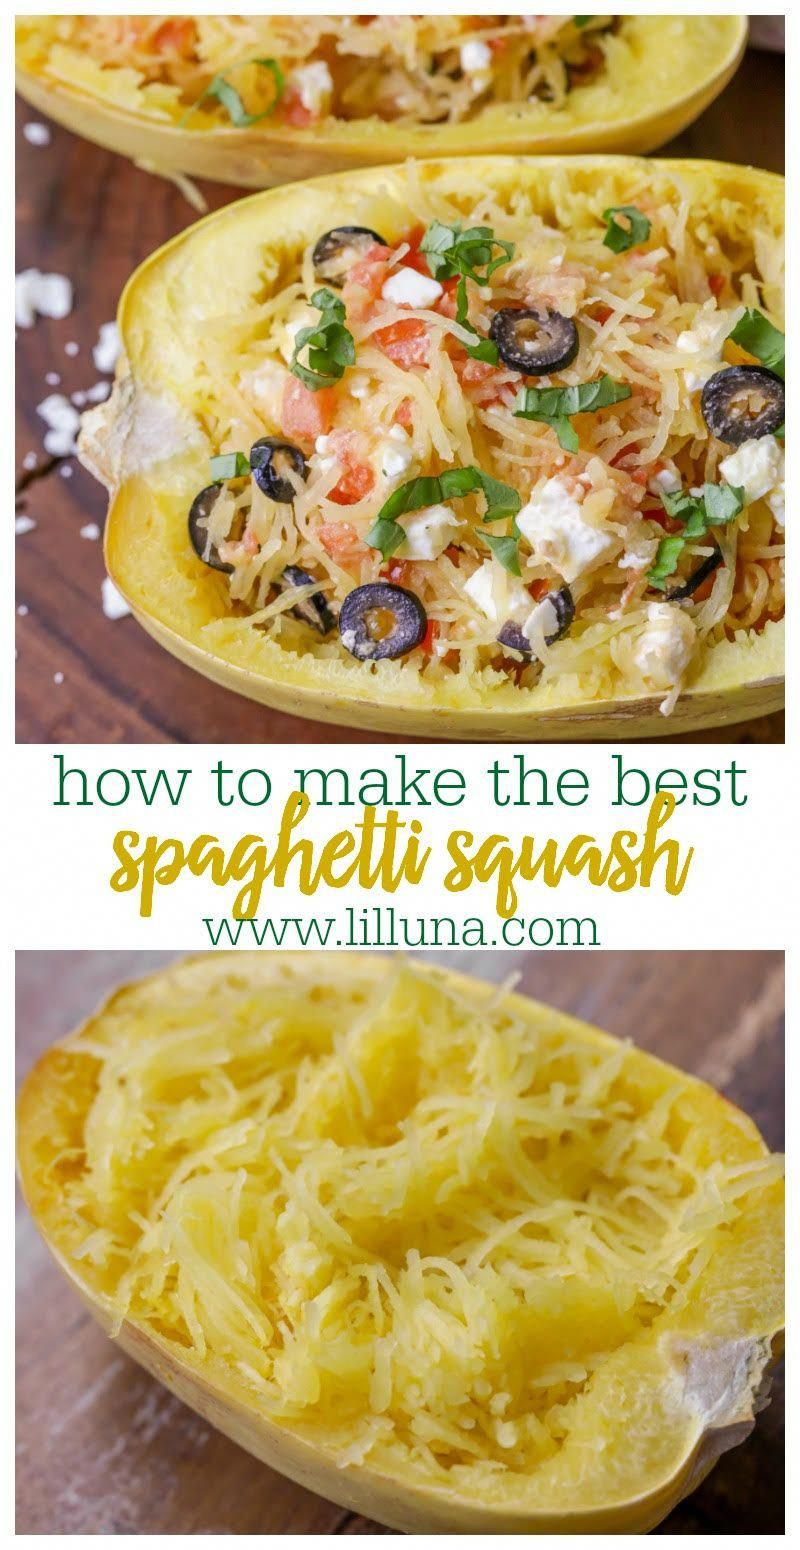 Learn How to Make the Perfect Spaghetti Squash - 4 Ways! | Lil' Luna #spagettisquashrecipes